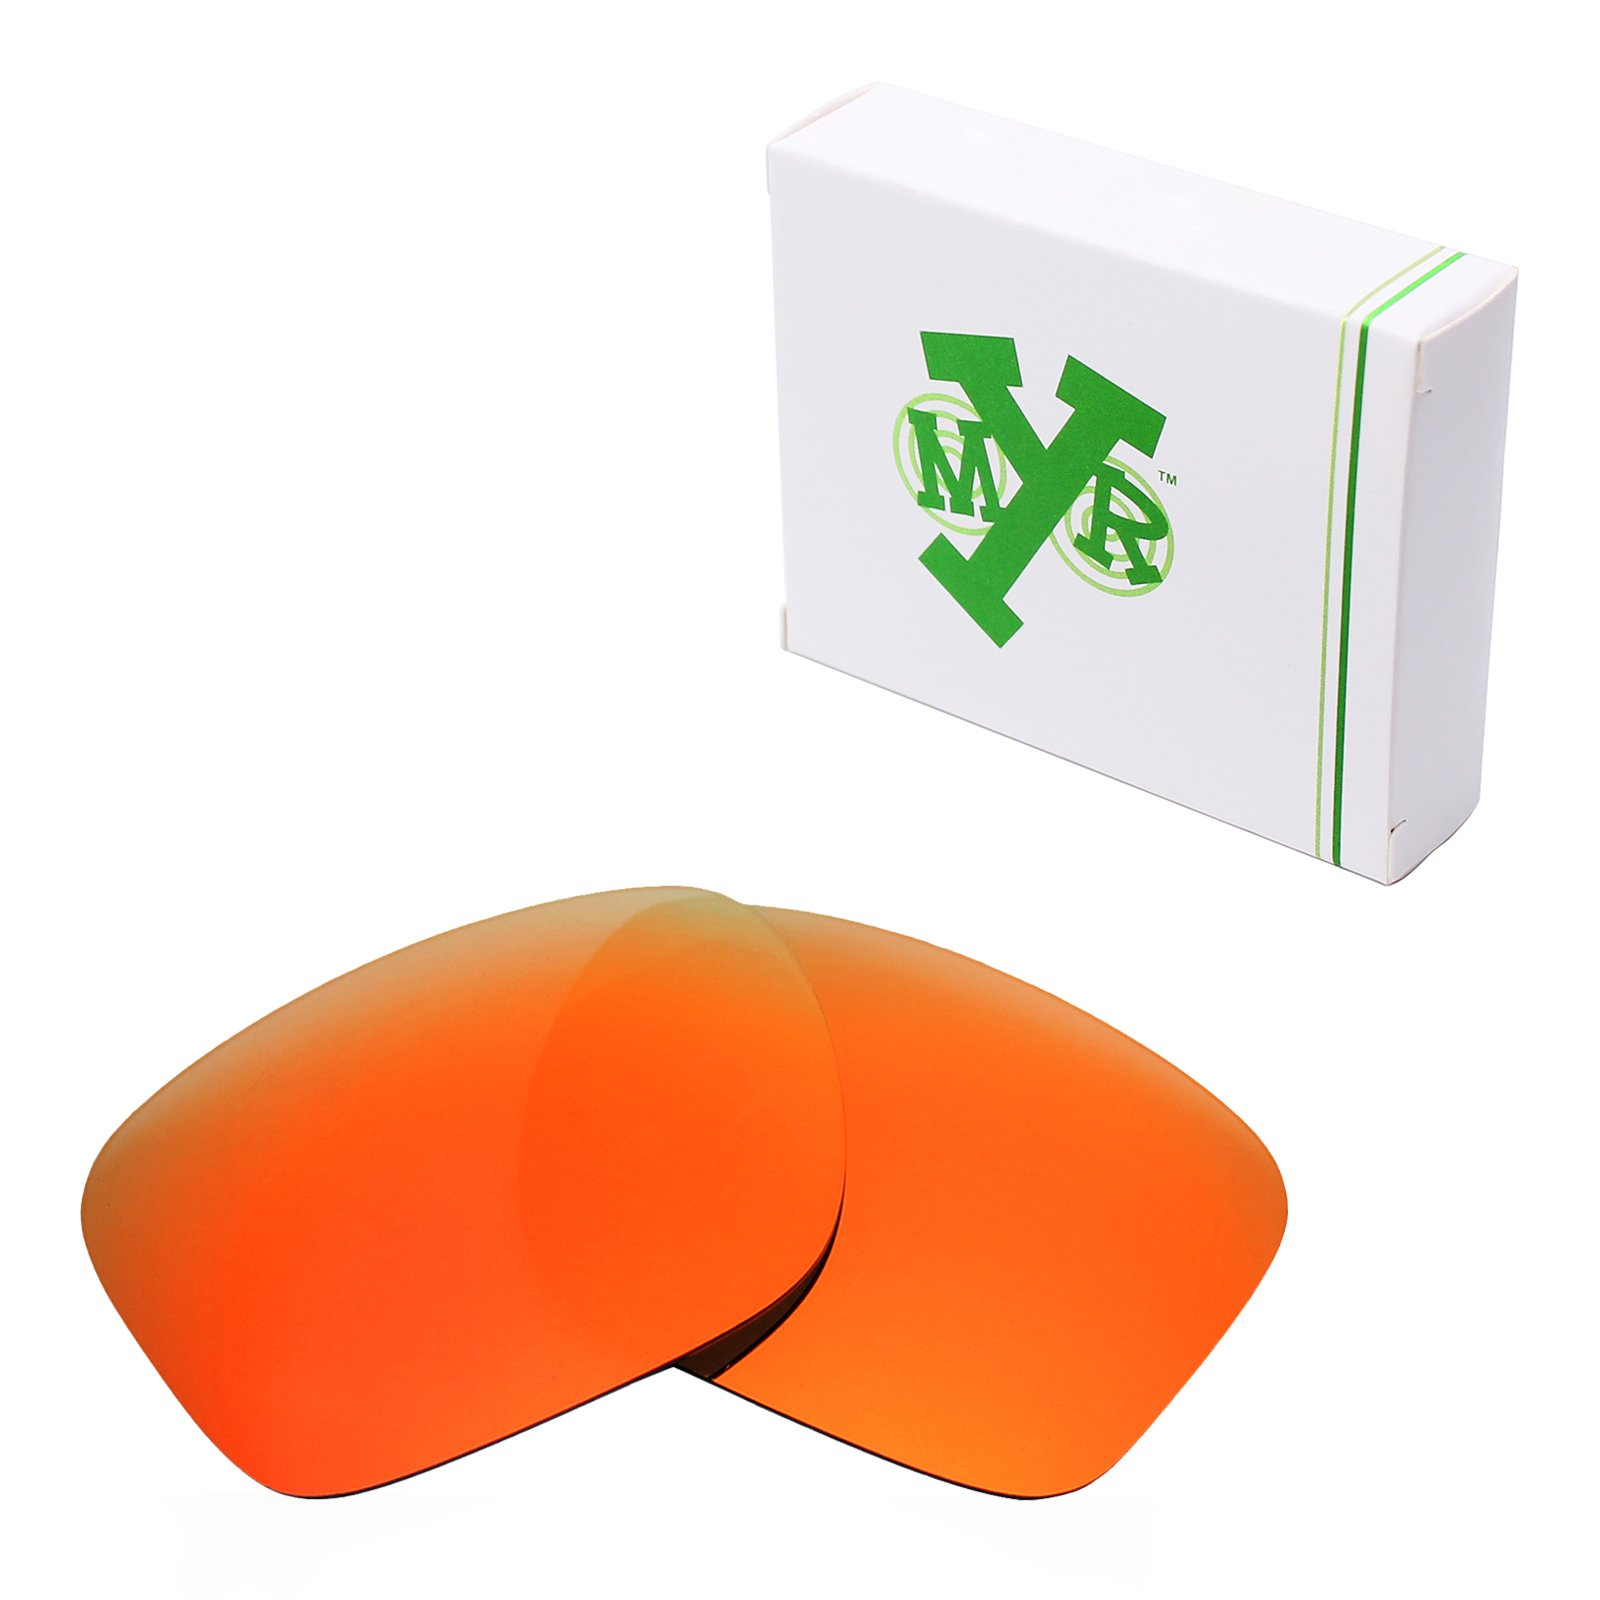 Mryok Polarized Replacement Lenses for Oakley Holbrook - Fire Red by Mryok